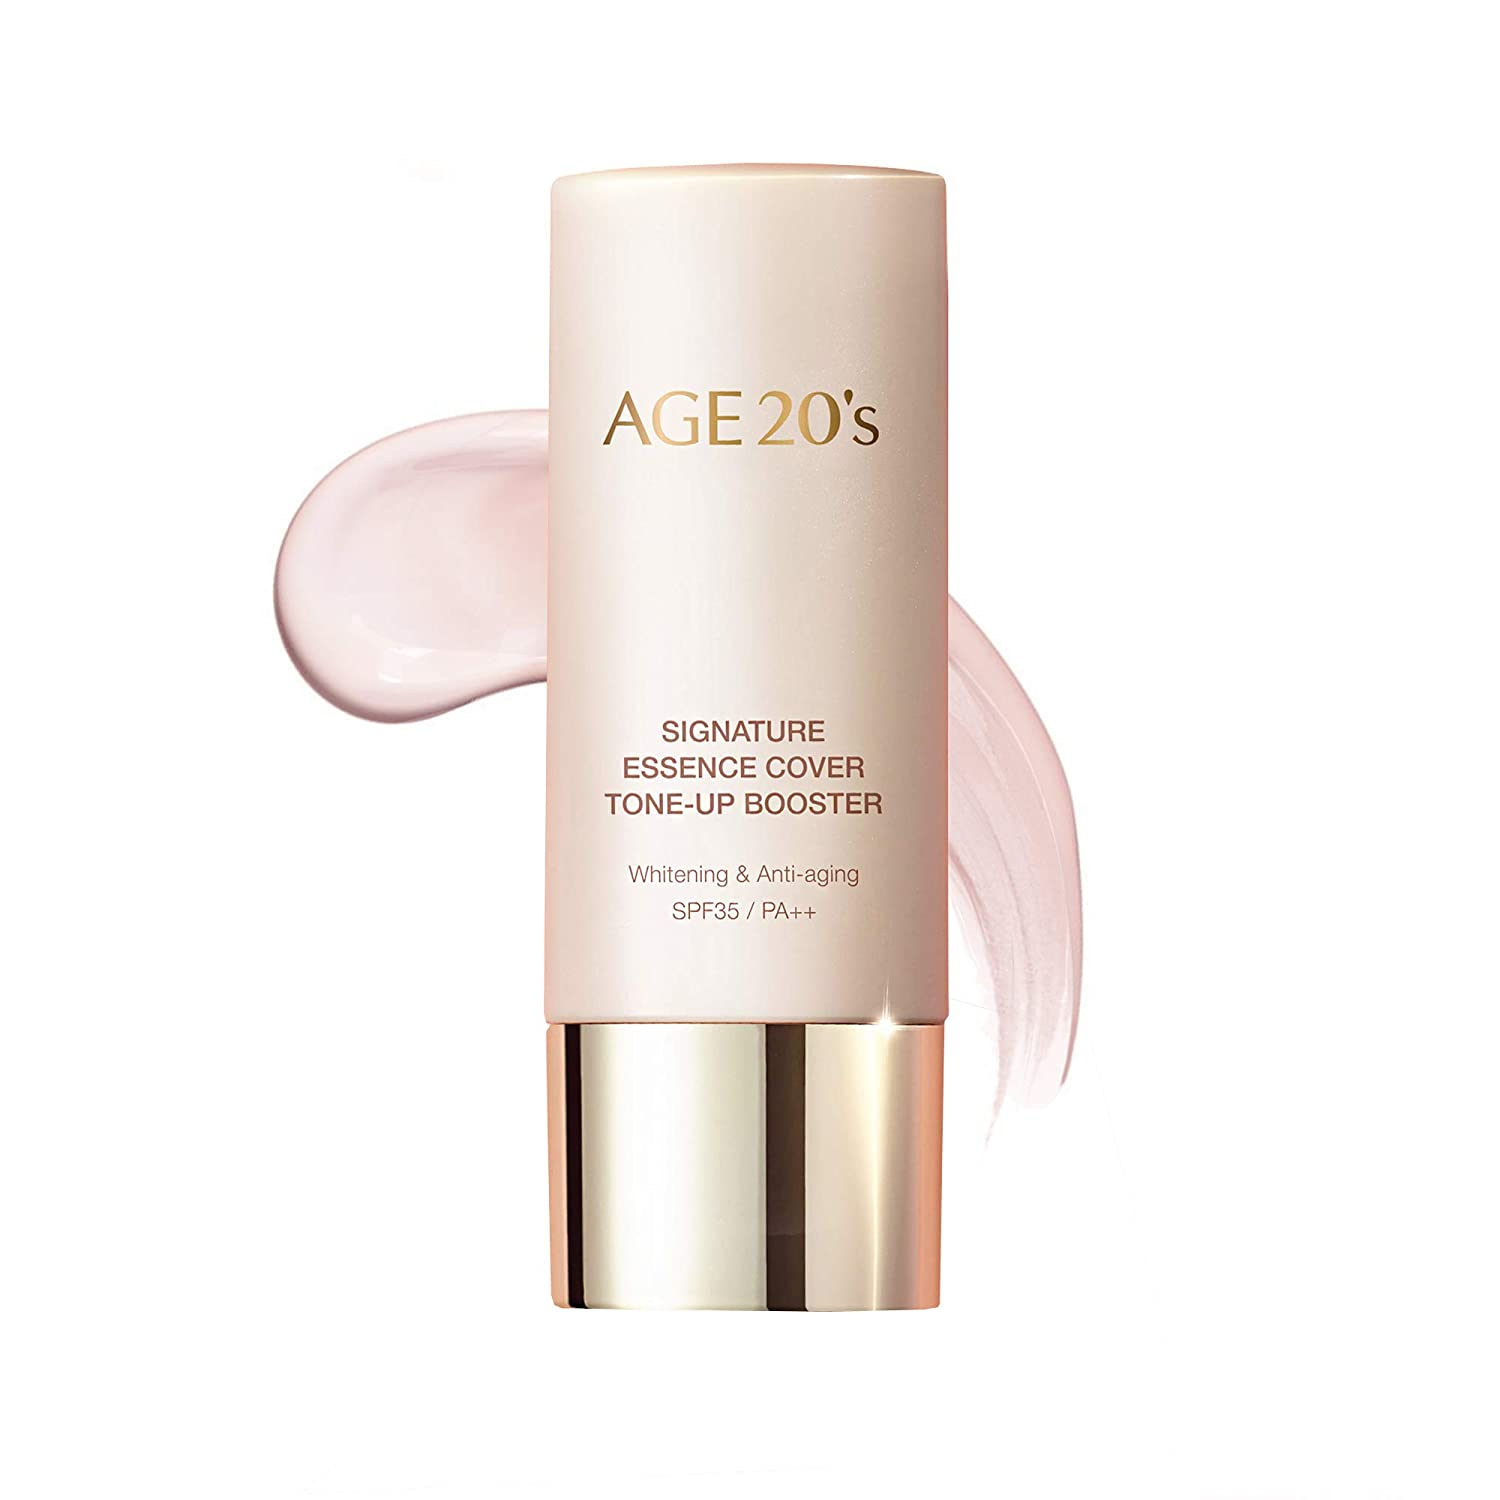 AGE 20's Brightening Tone-up Booster - Make-up Base and Primer with 71% of Hydrating Essence (1.35 fl oz)